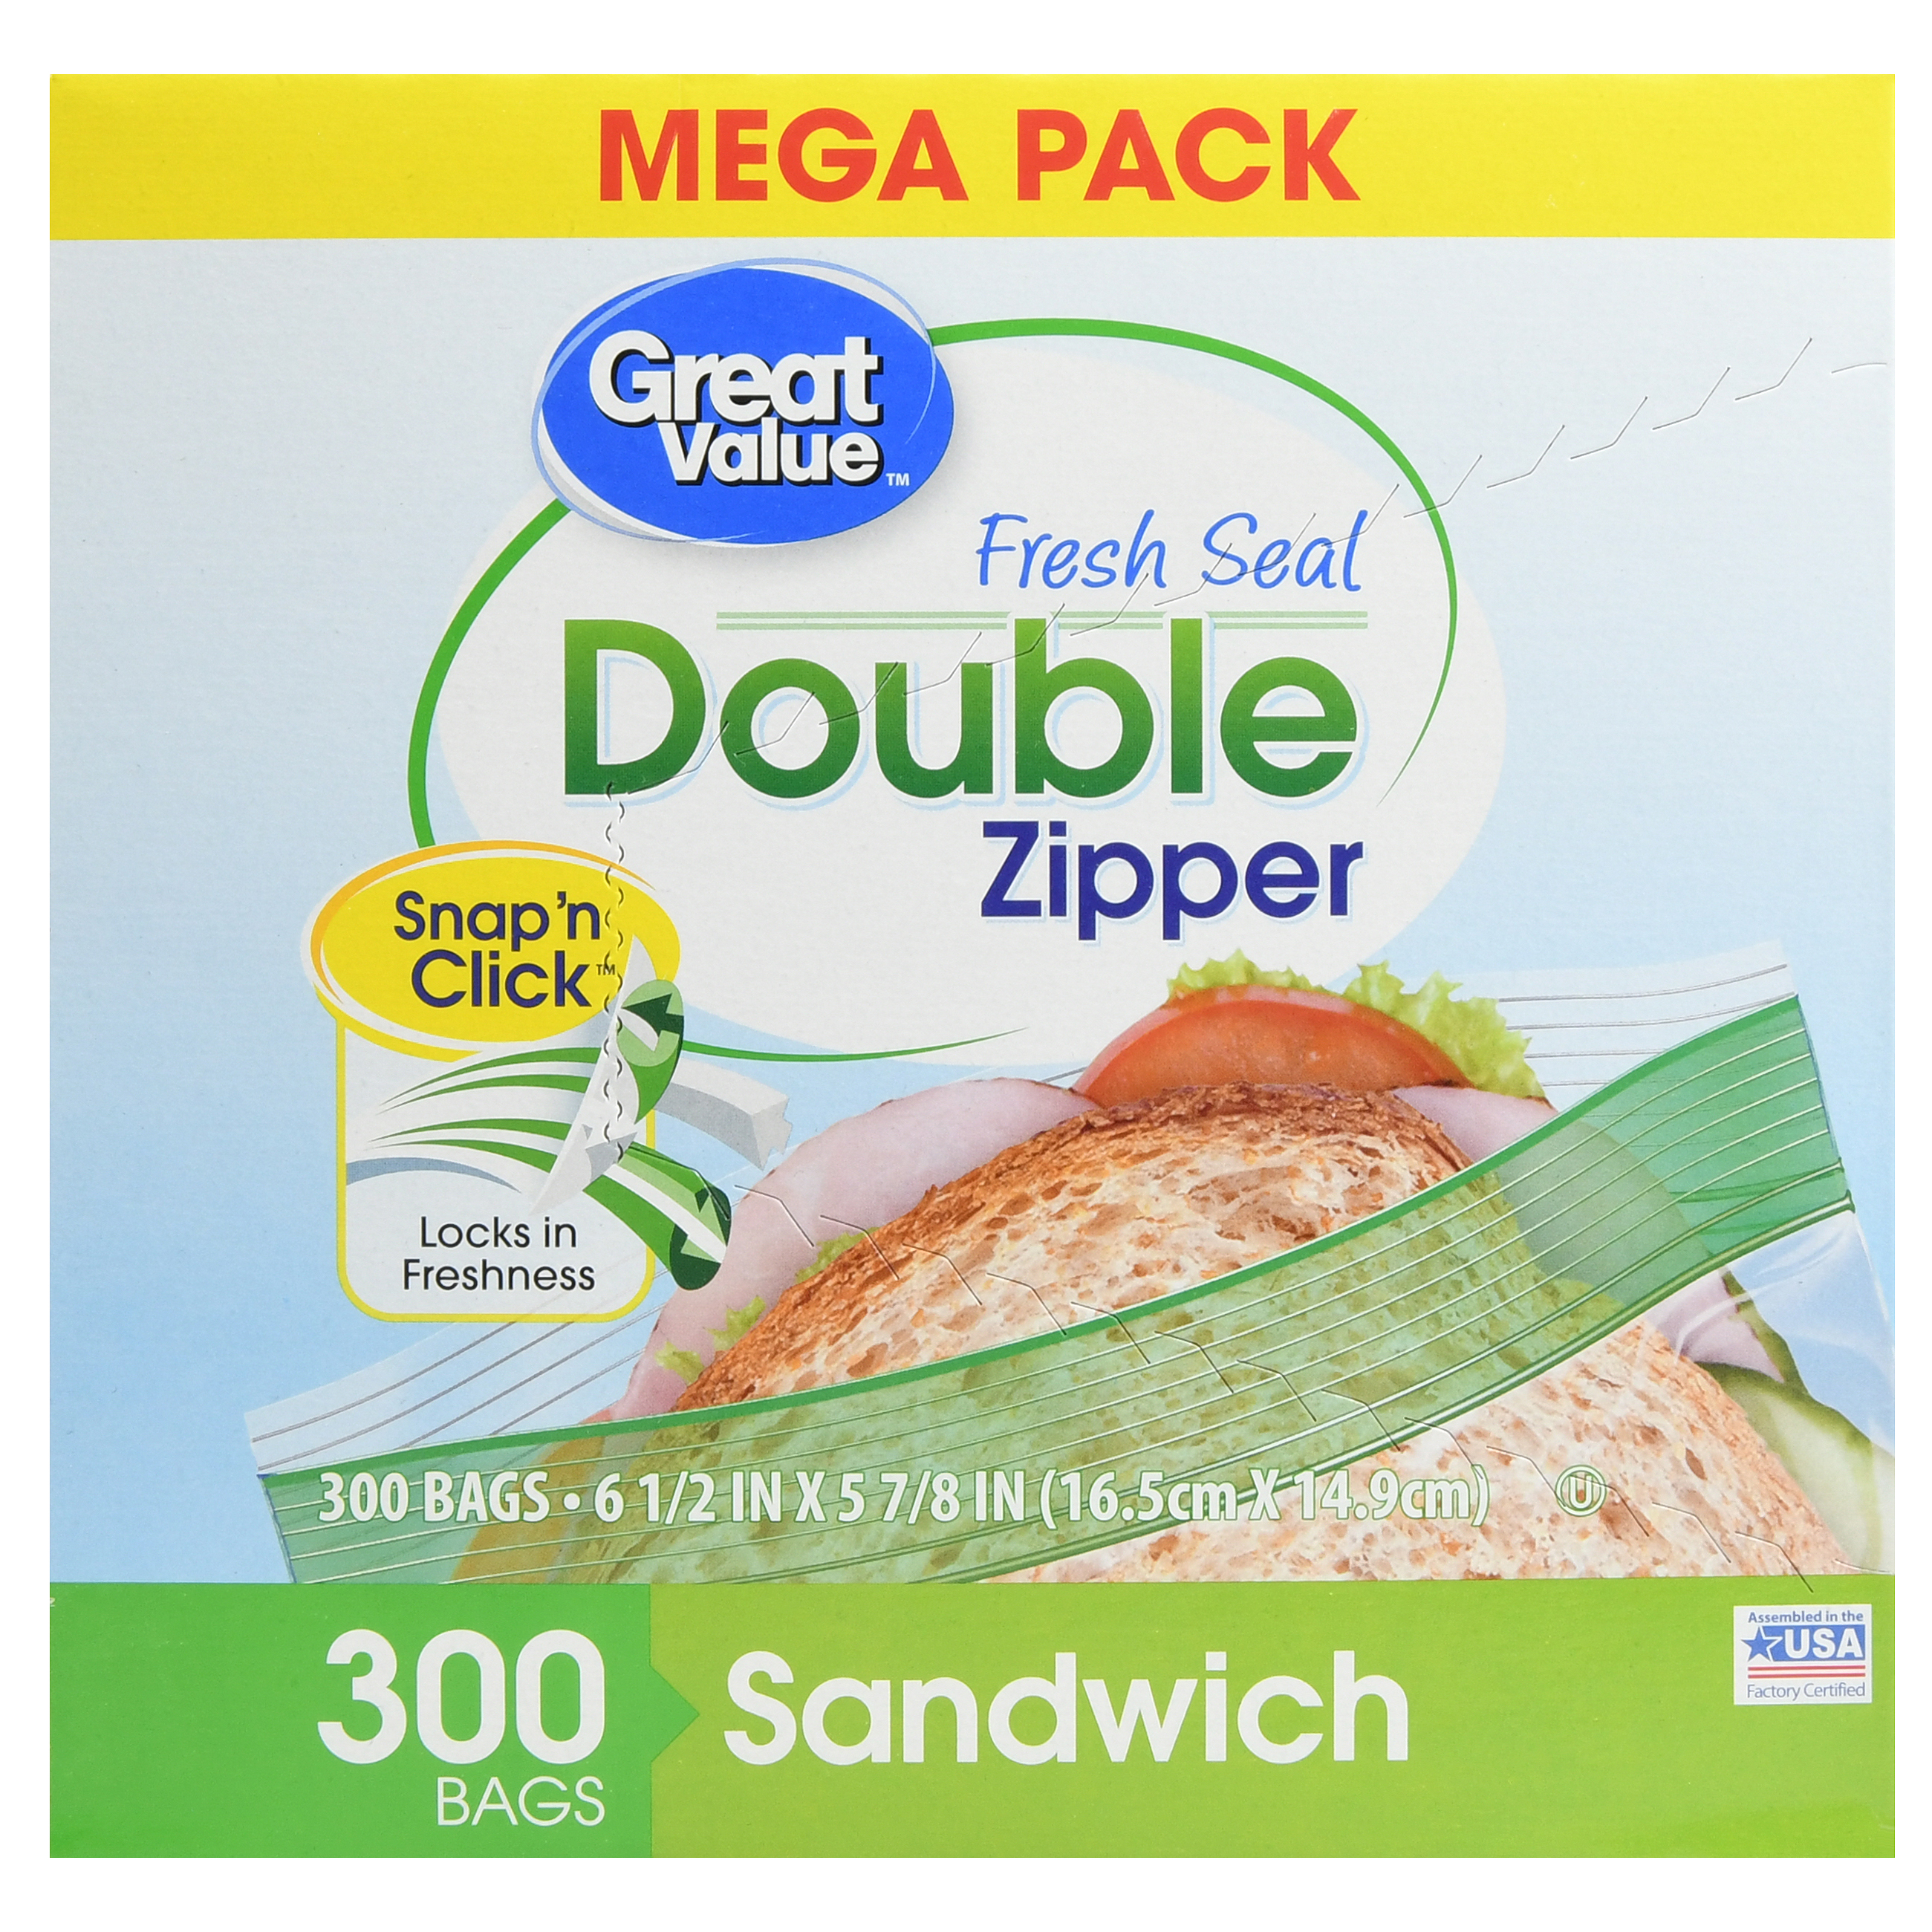 Great Value Double Zipper Food Storage Bags, Sandwich, Mega Pack, 300 Count